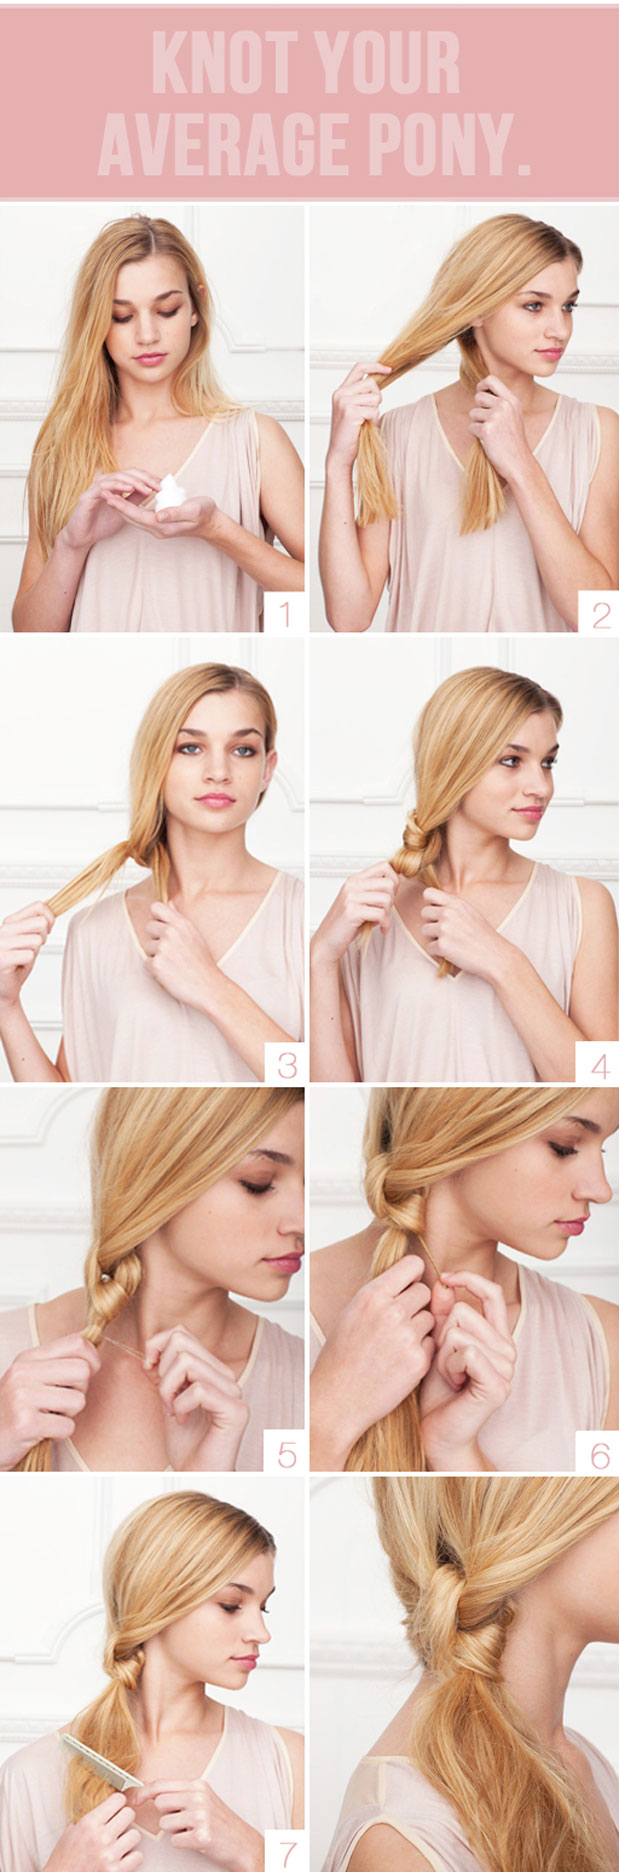 how-to-do-braided-hairstyles-step-by-step-2013-30